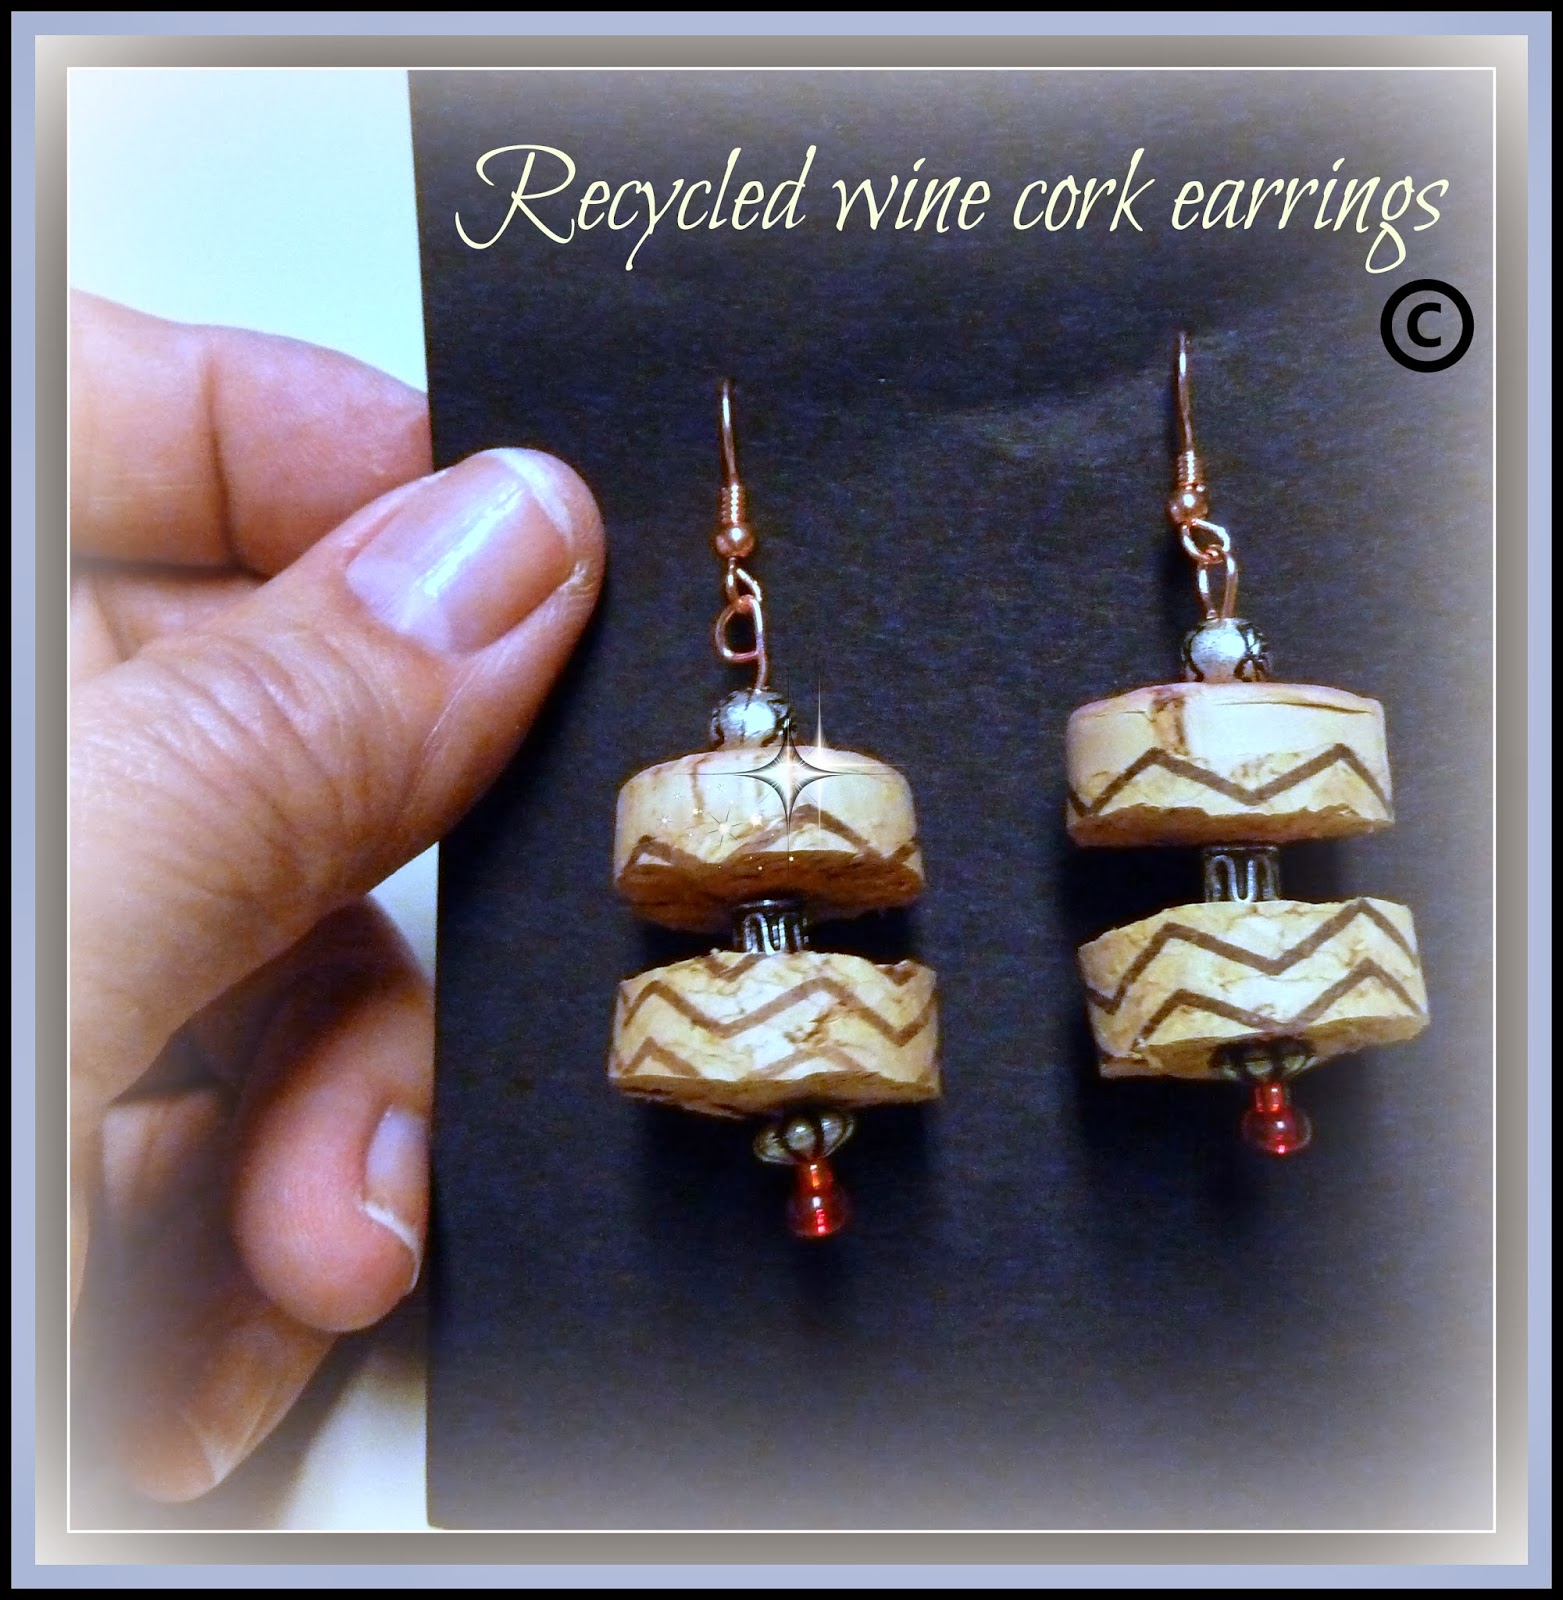 Make it easy crafts recycled wine cork earrings tutorial for Crafts with wine bottle corks